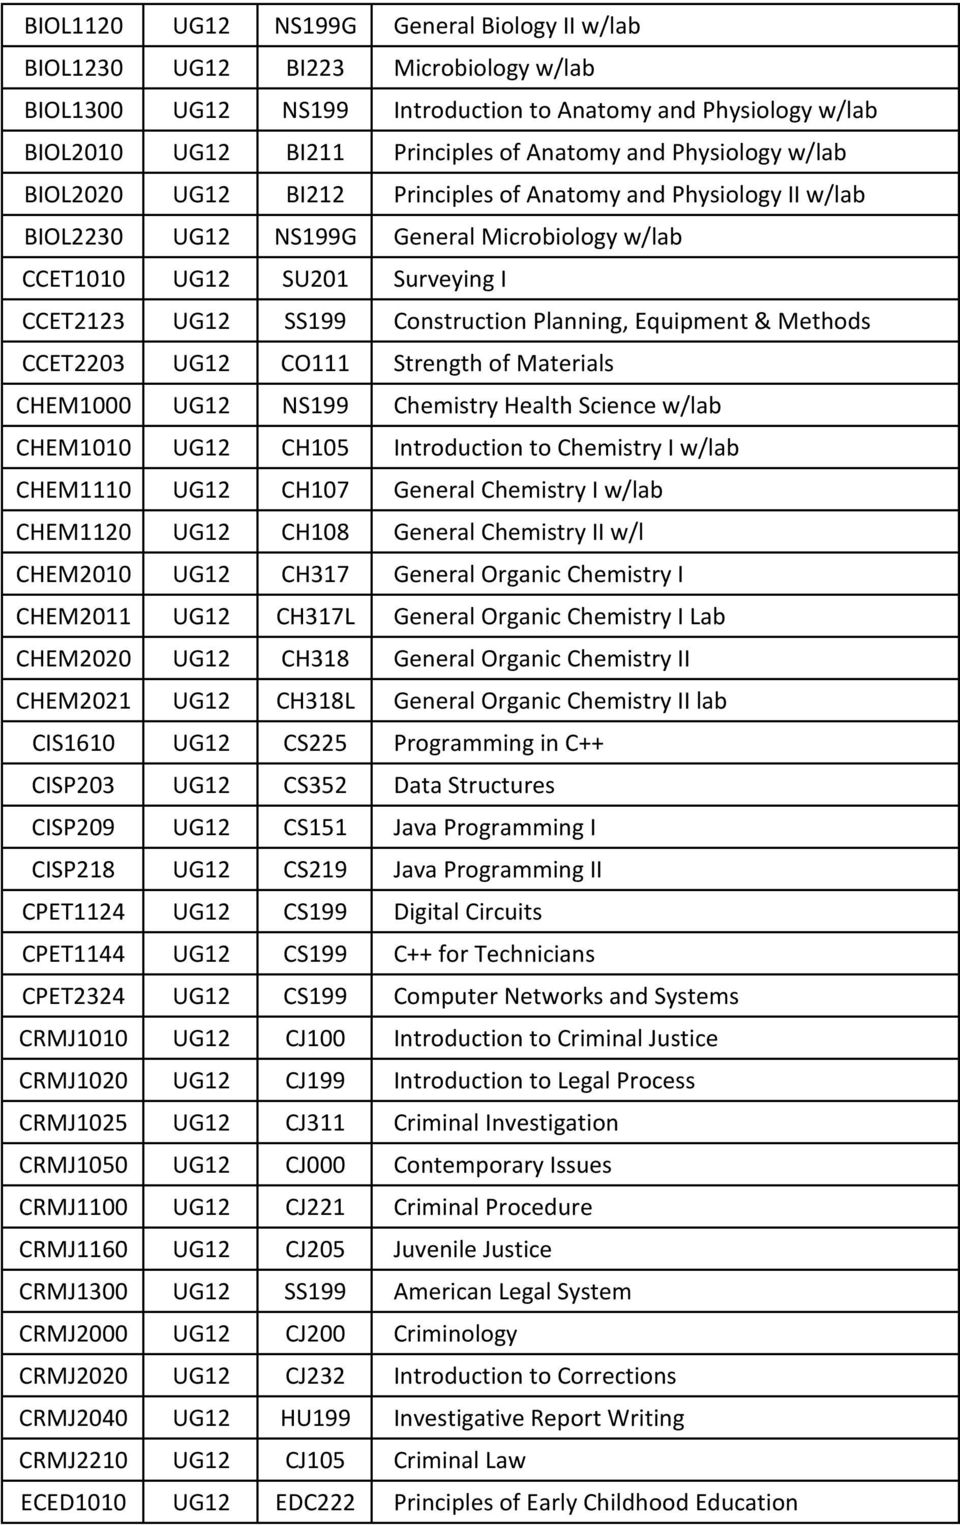 Planning, Equipment & Methods CCET2203 UG12 CO111 Strength of Materials CHEM1000 UG12 NS199 Chemistry Health Science w/lab CHEM1010 UG12 CH105 Introduction to Chemistry I w/lab CHEM1110 UG12 CH107